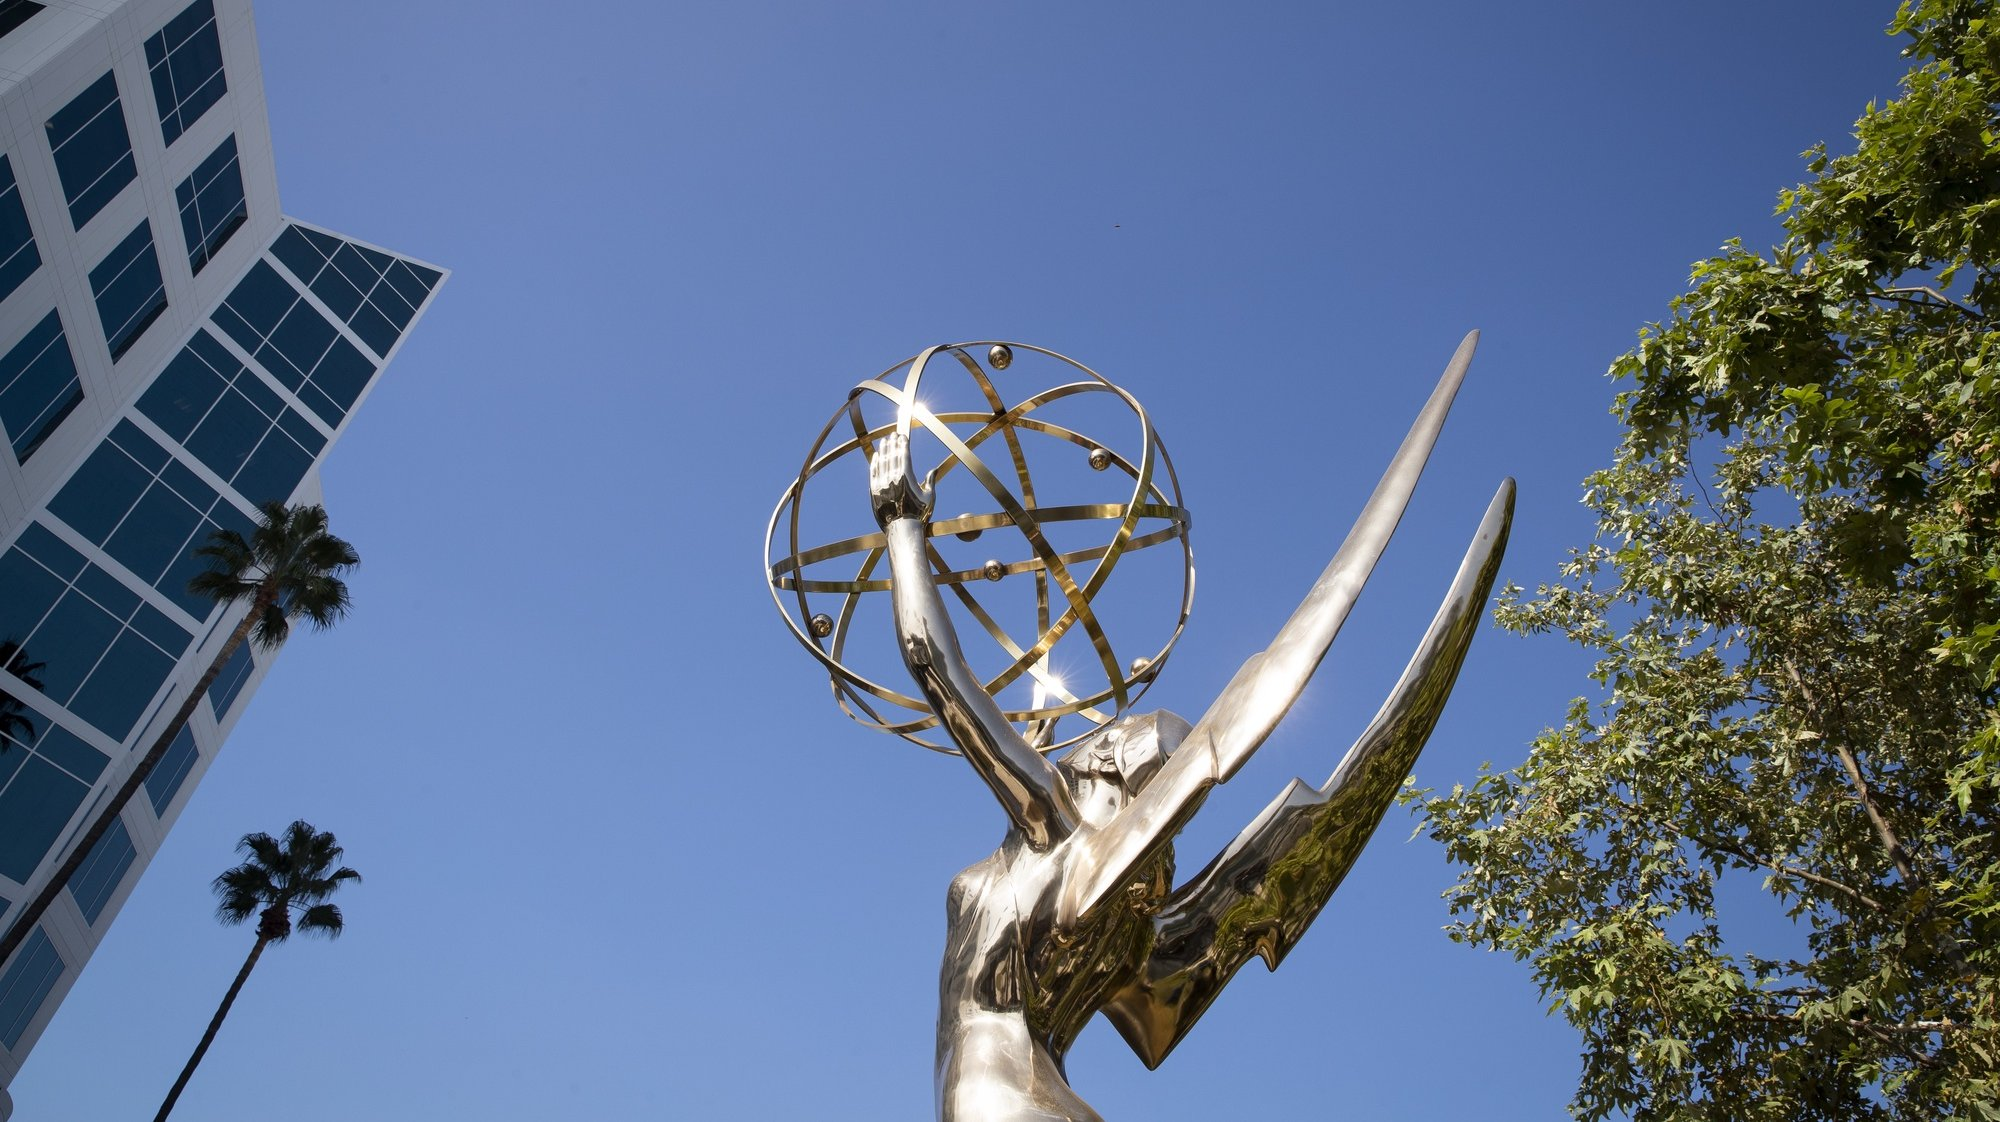 epa09470509 A large Emmy statuette is displayed during a press preview for the 2021 Emmy Awards telecast at the Television Academy in Los Angeles, California, USA, 15 September 2021. The preview included drinks, food and show elements that will be present for nominees and guests at the 73rd Emmy Awards telecast on 19 September 2021.  EPA/CAROLINE BREHMAN